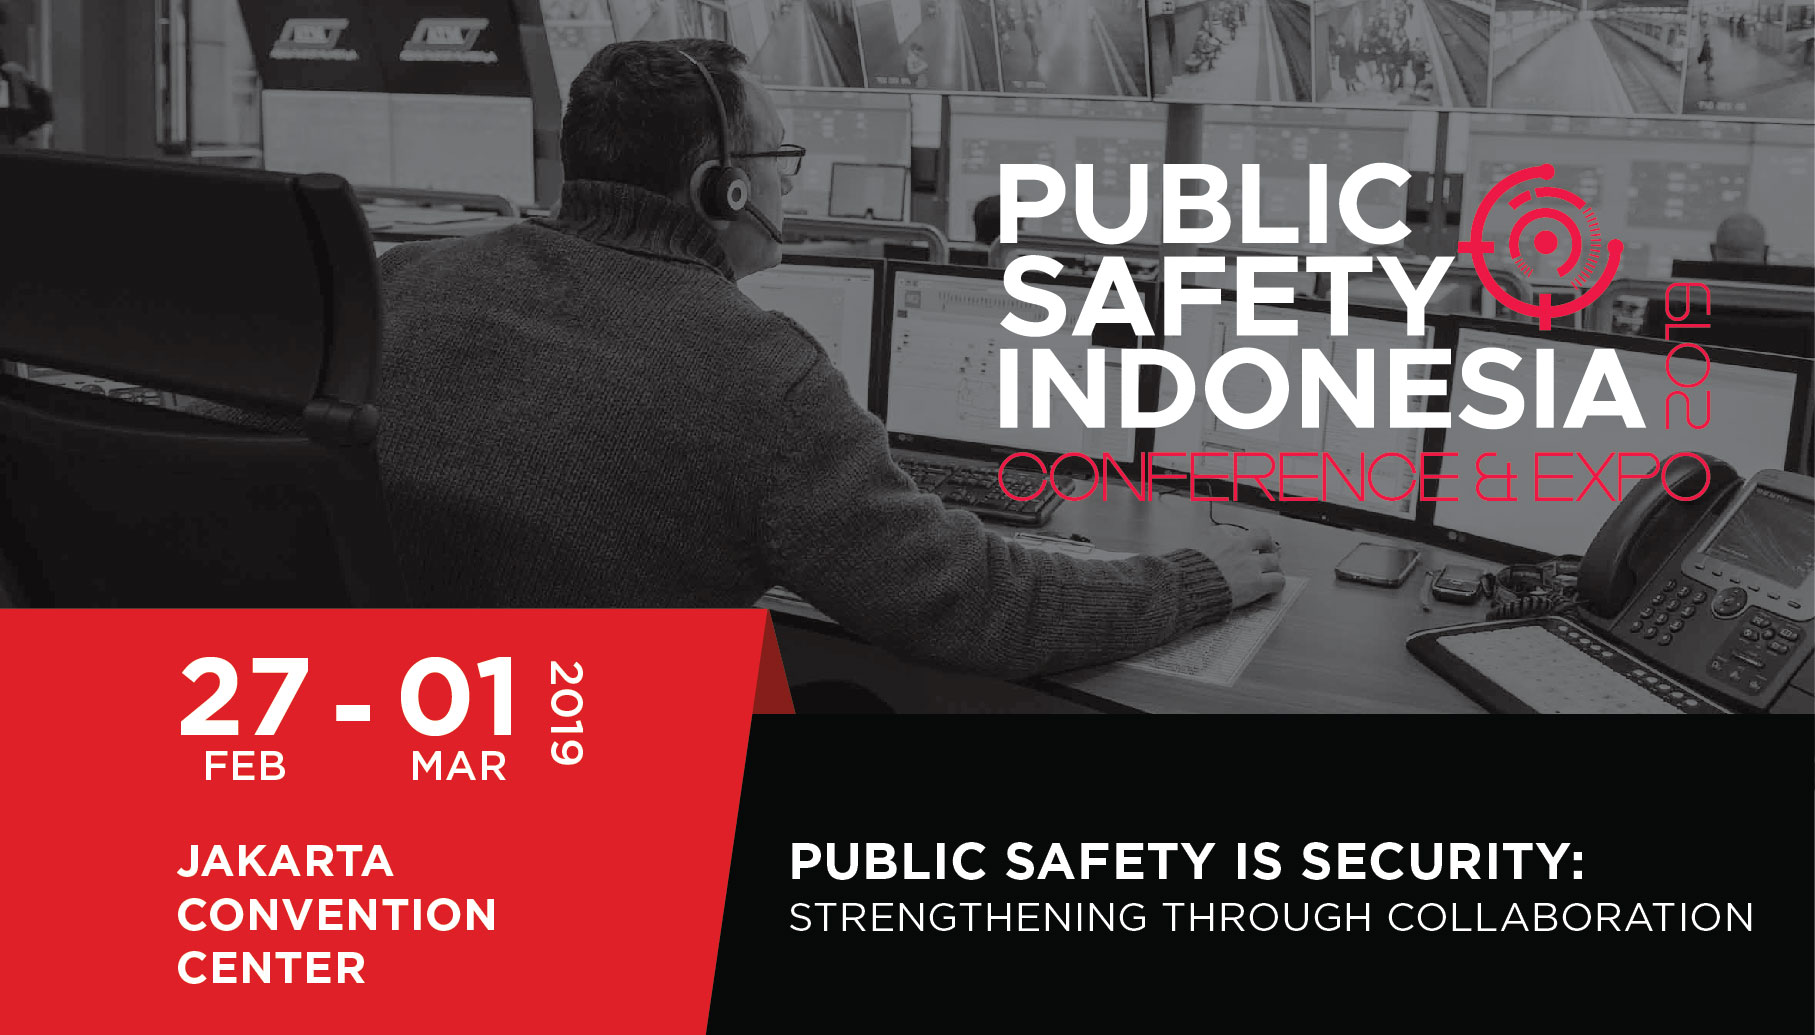 Public Safety Indonesia Conference & Expo 2019, Central Jakarta, Jakarta, Indonesia